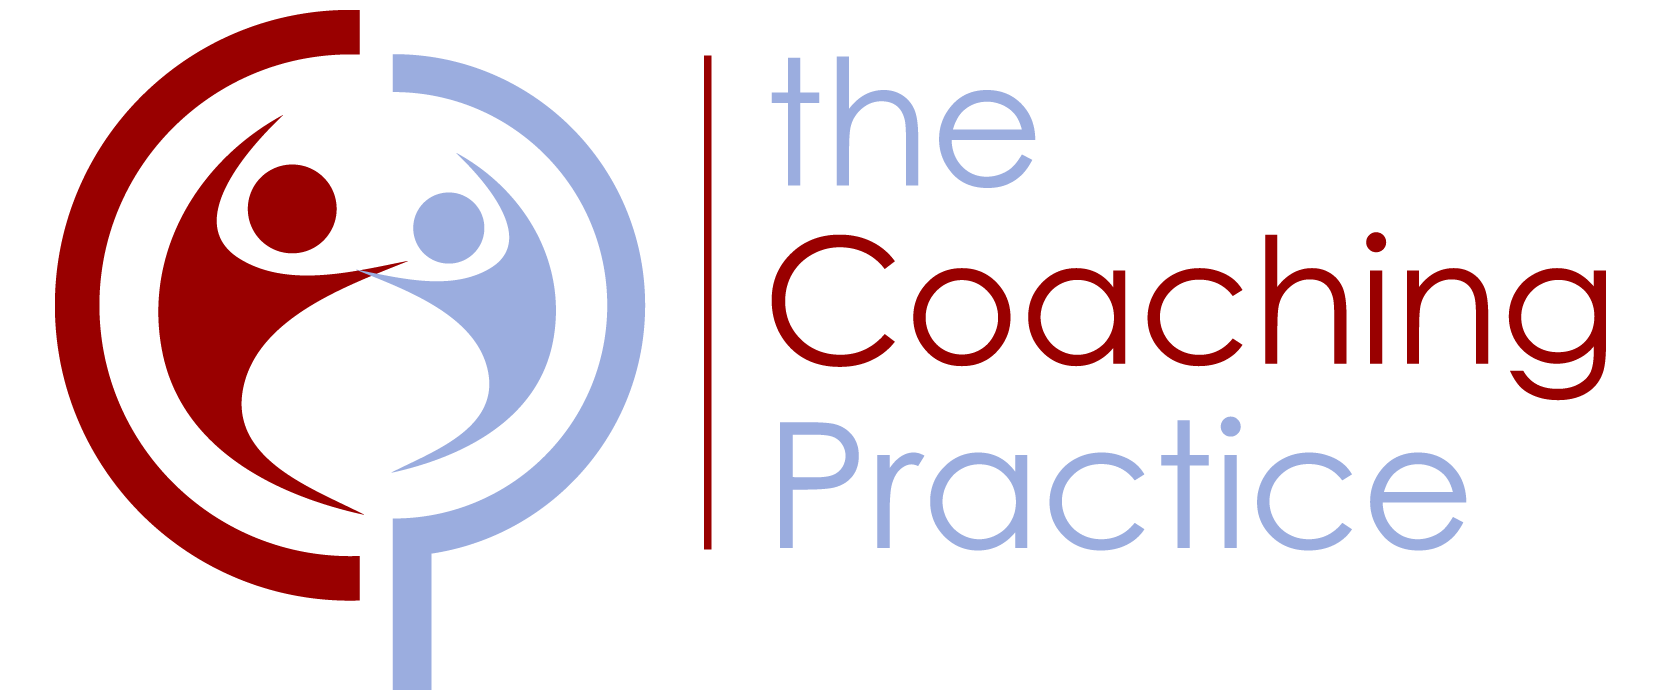 The Coaching Practice